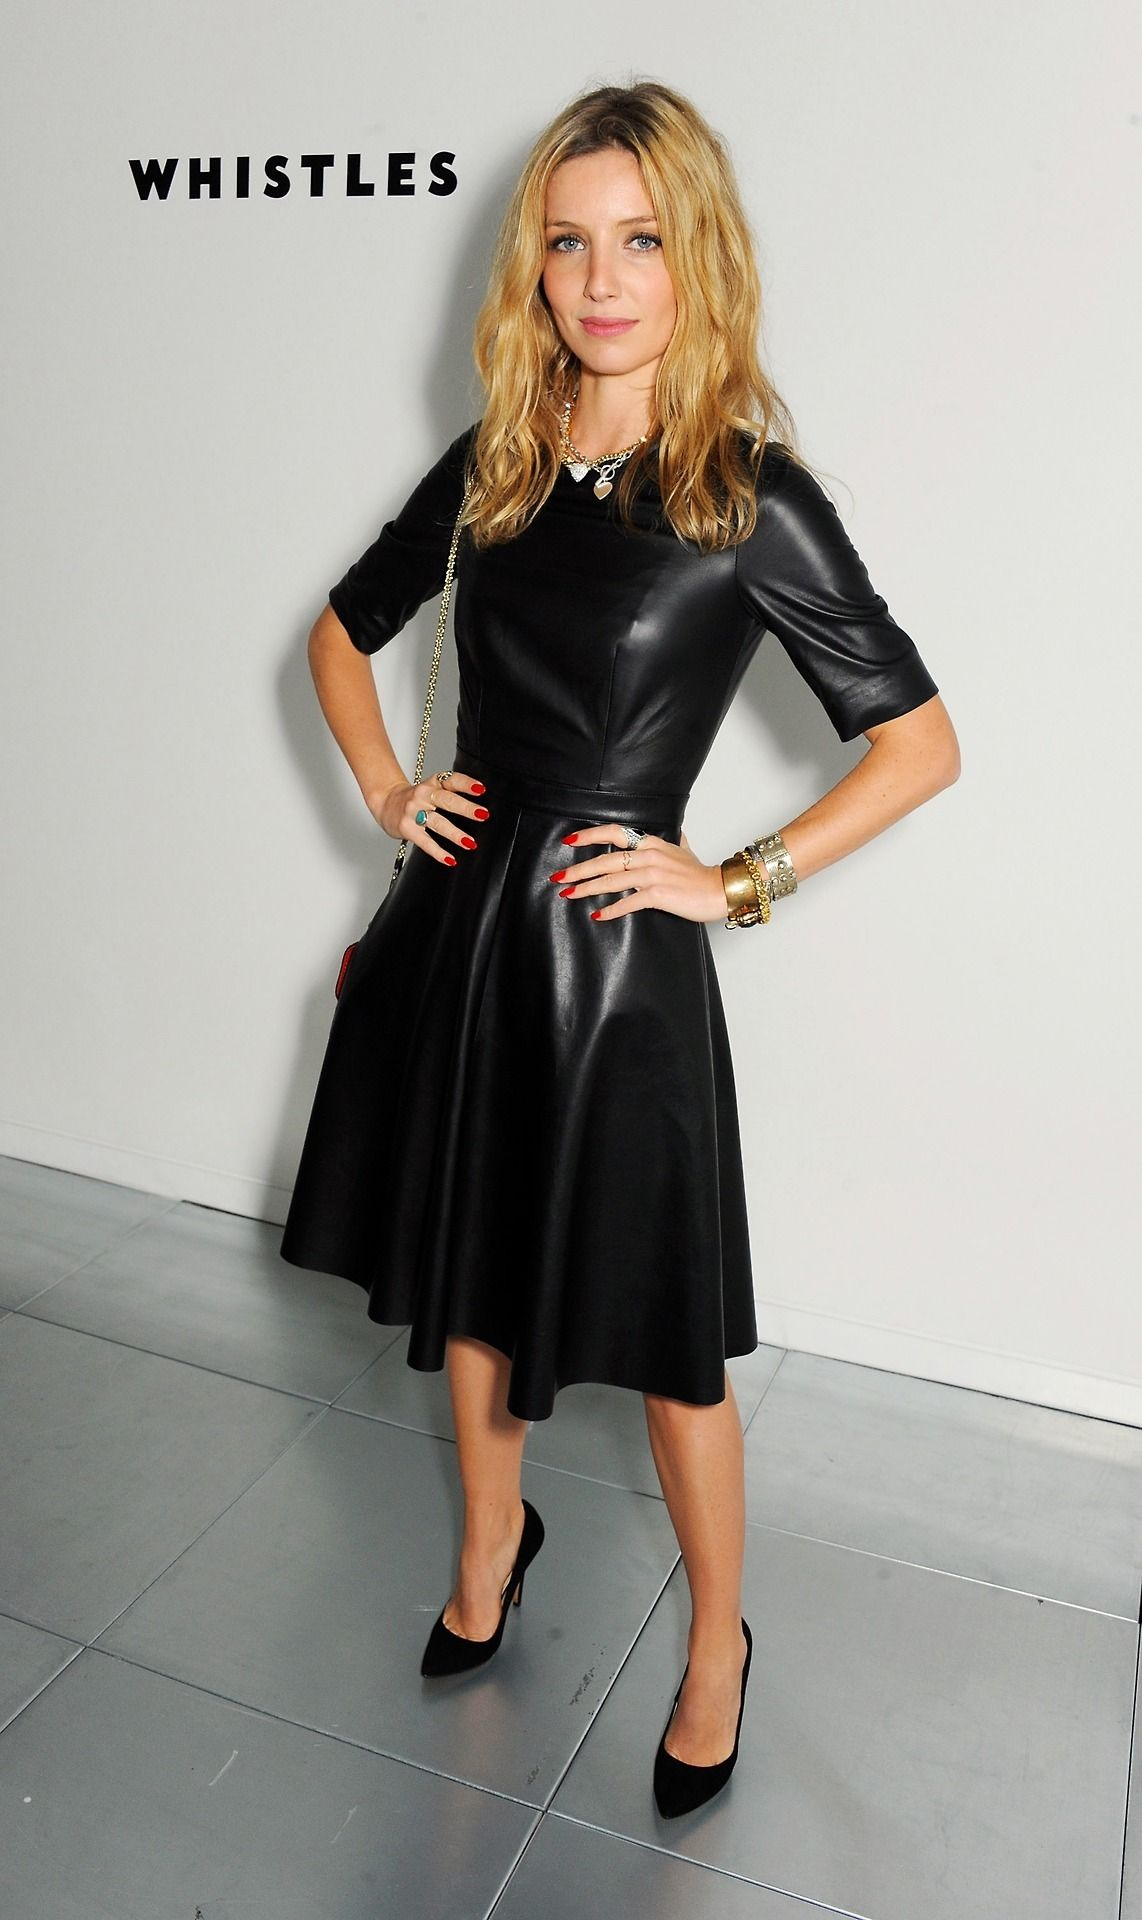 Lederkleid Braun Subtleelevation Annabelle Wallis Leather Leather Dresses